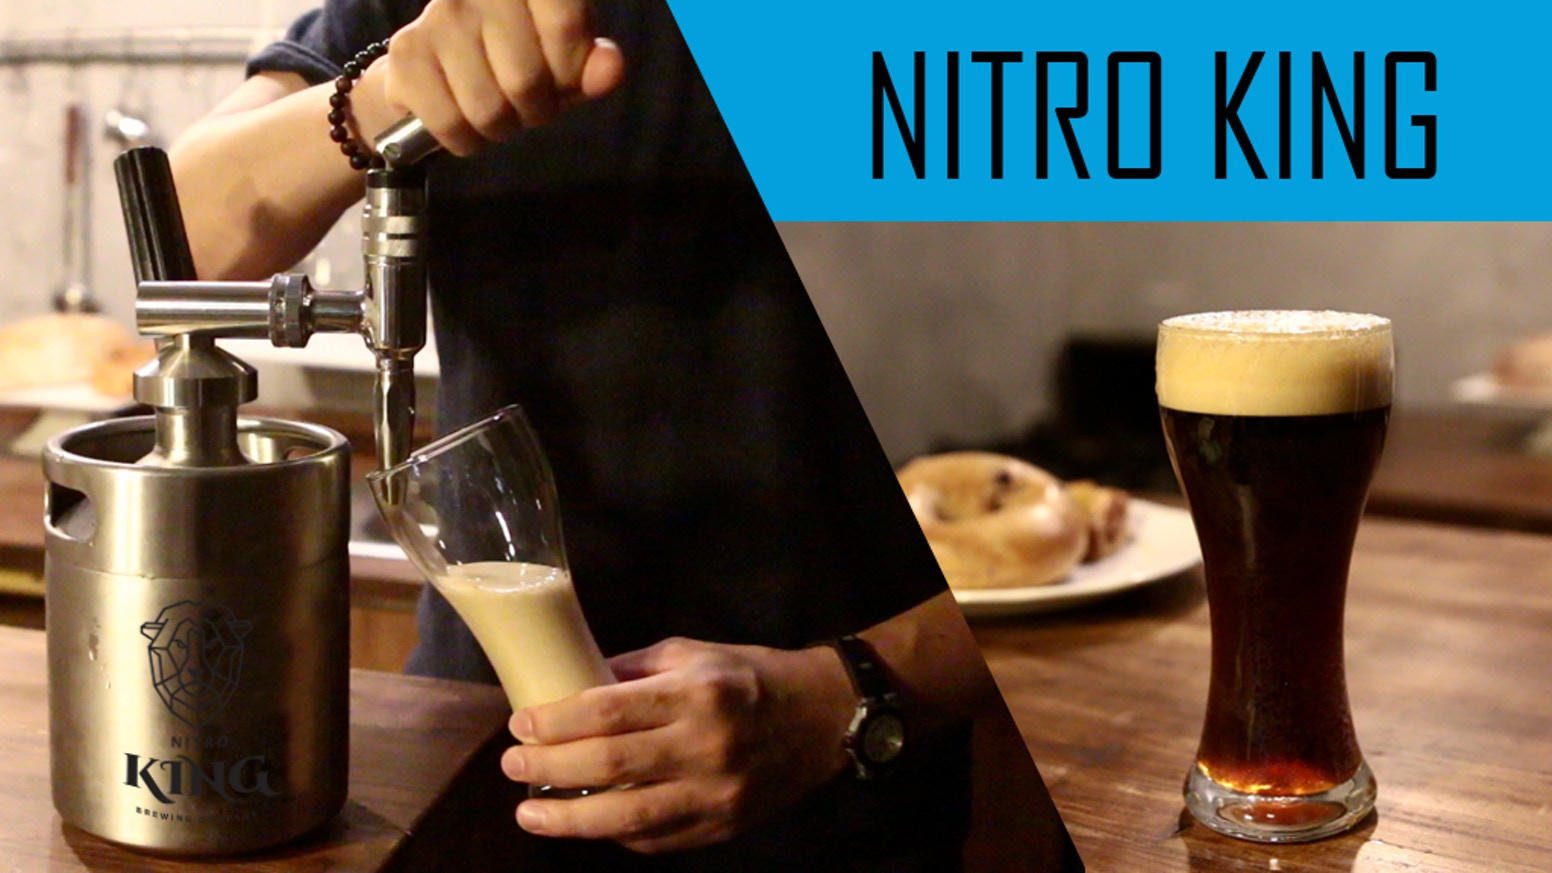 NITRO KING - Make Nitro Cold Brew Coffee Easily At Home by Brewing